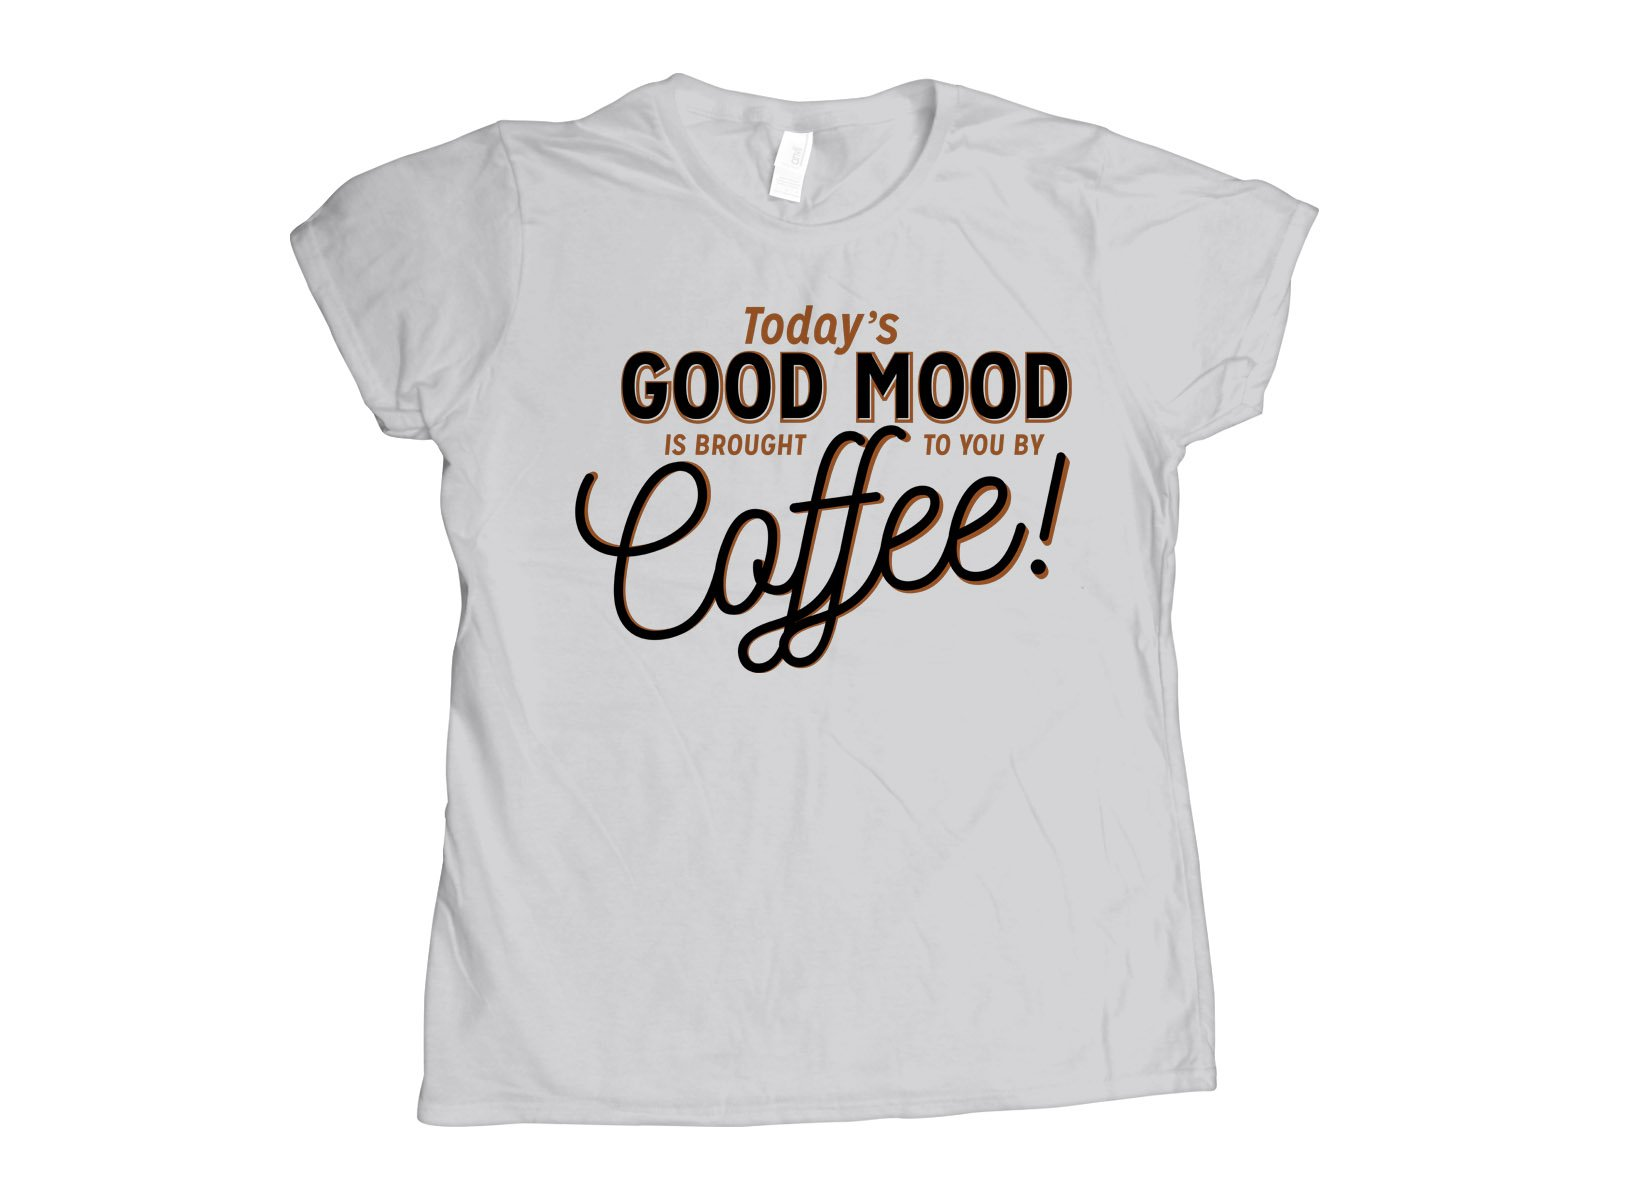 Today's Good Mood on Womens T-Shirt